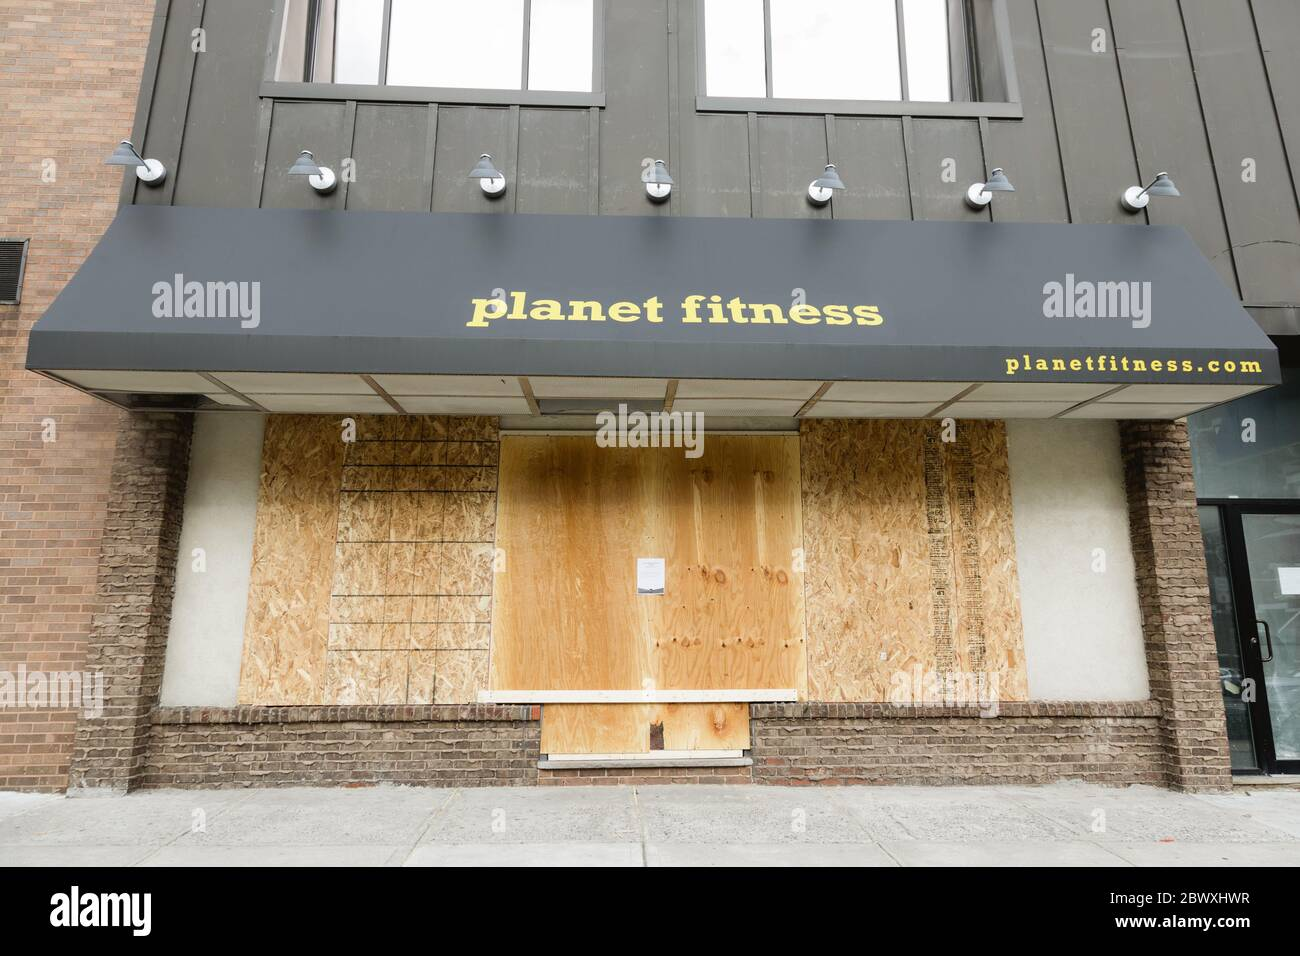 Hoboken Nj Usa June 2 2020 Planet Fitness Gym Storefront Is Protected With Plywood In Preparation For George Floyd Protest For Black Lives Matt Stock Photo Alamy